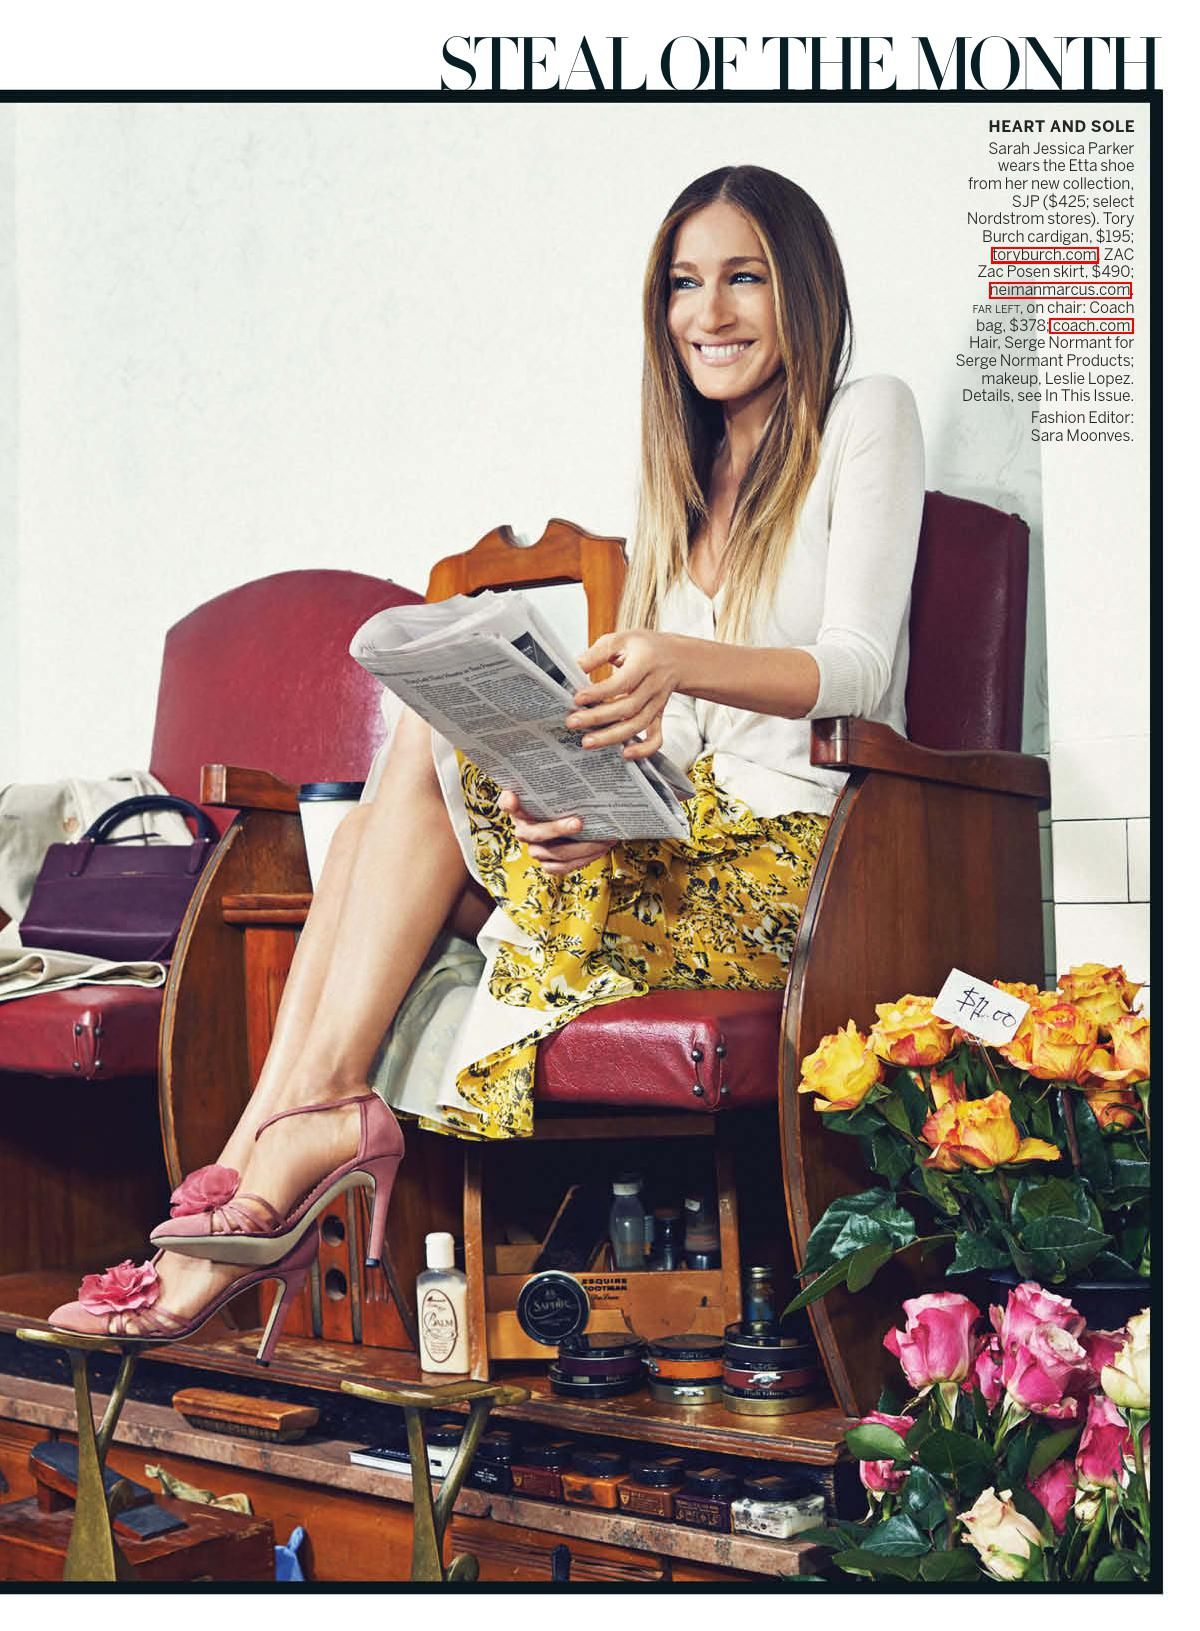 SARAH JESSICA PARKER in Vogue Magazine, March 2014 Issue